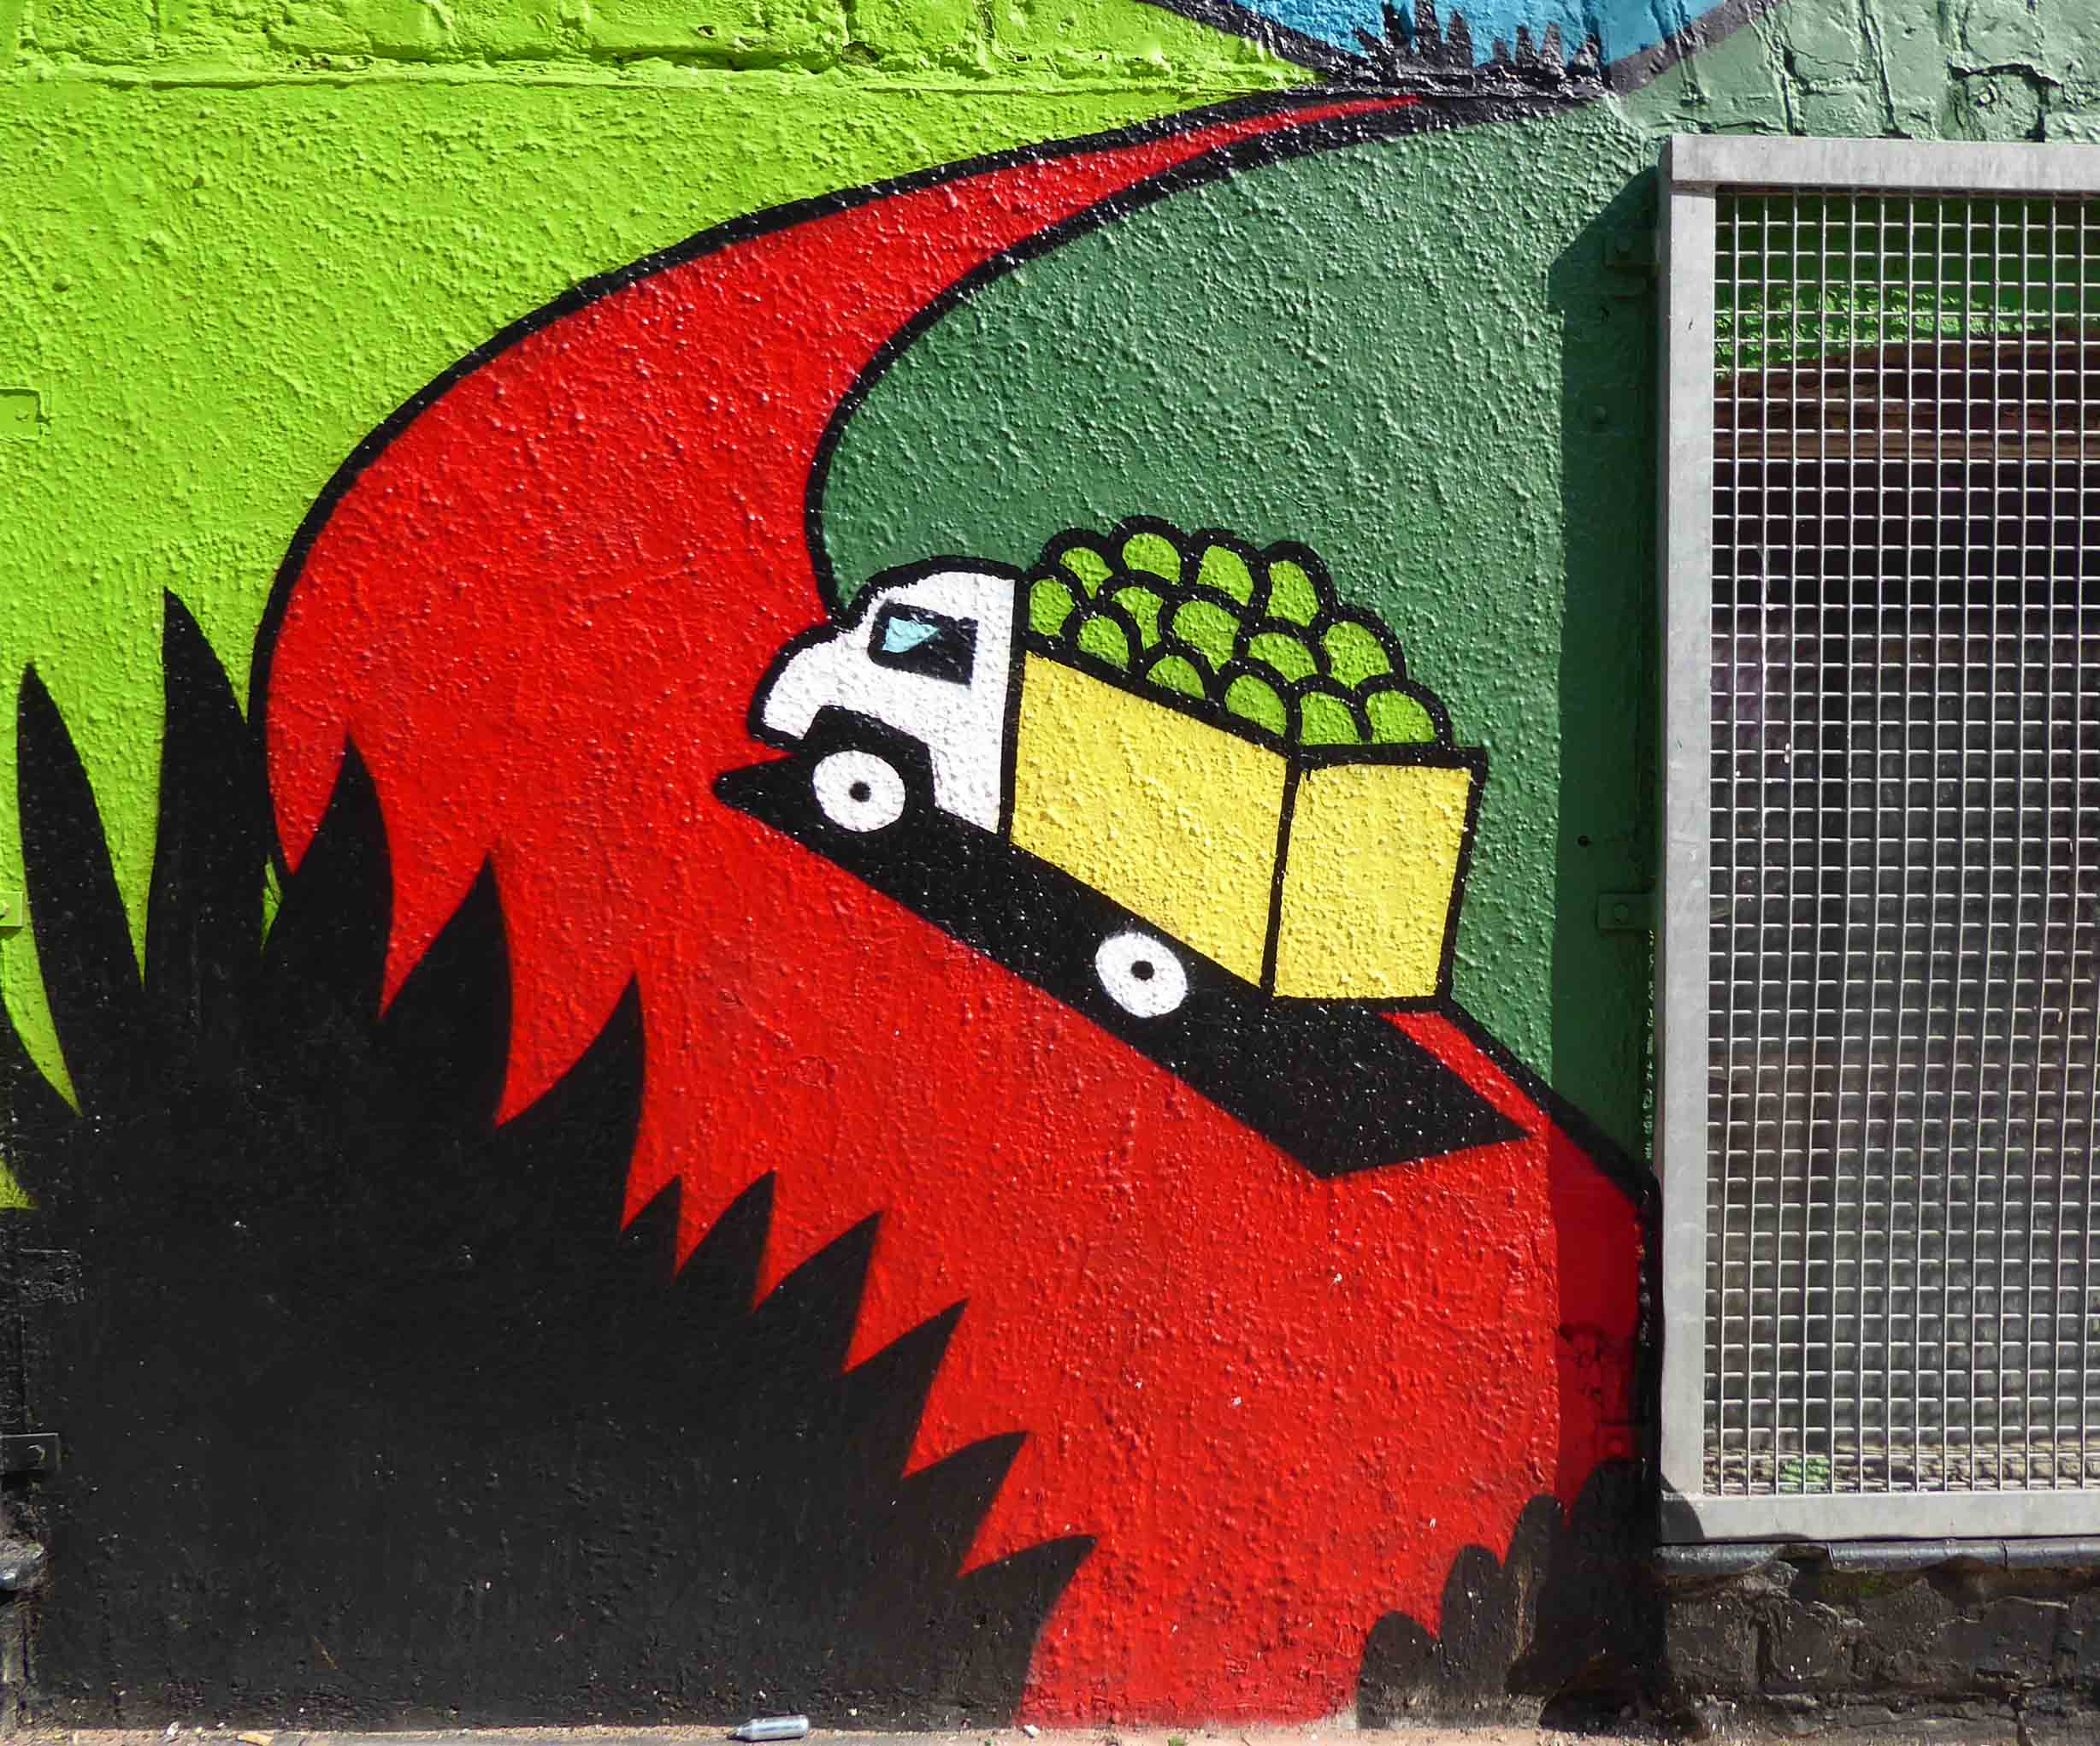 Mural of a truck with fruit